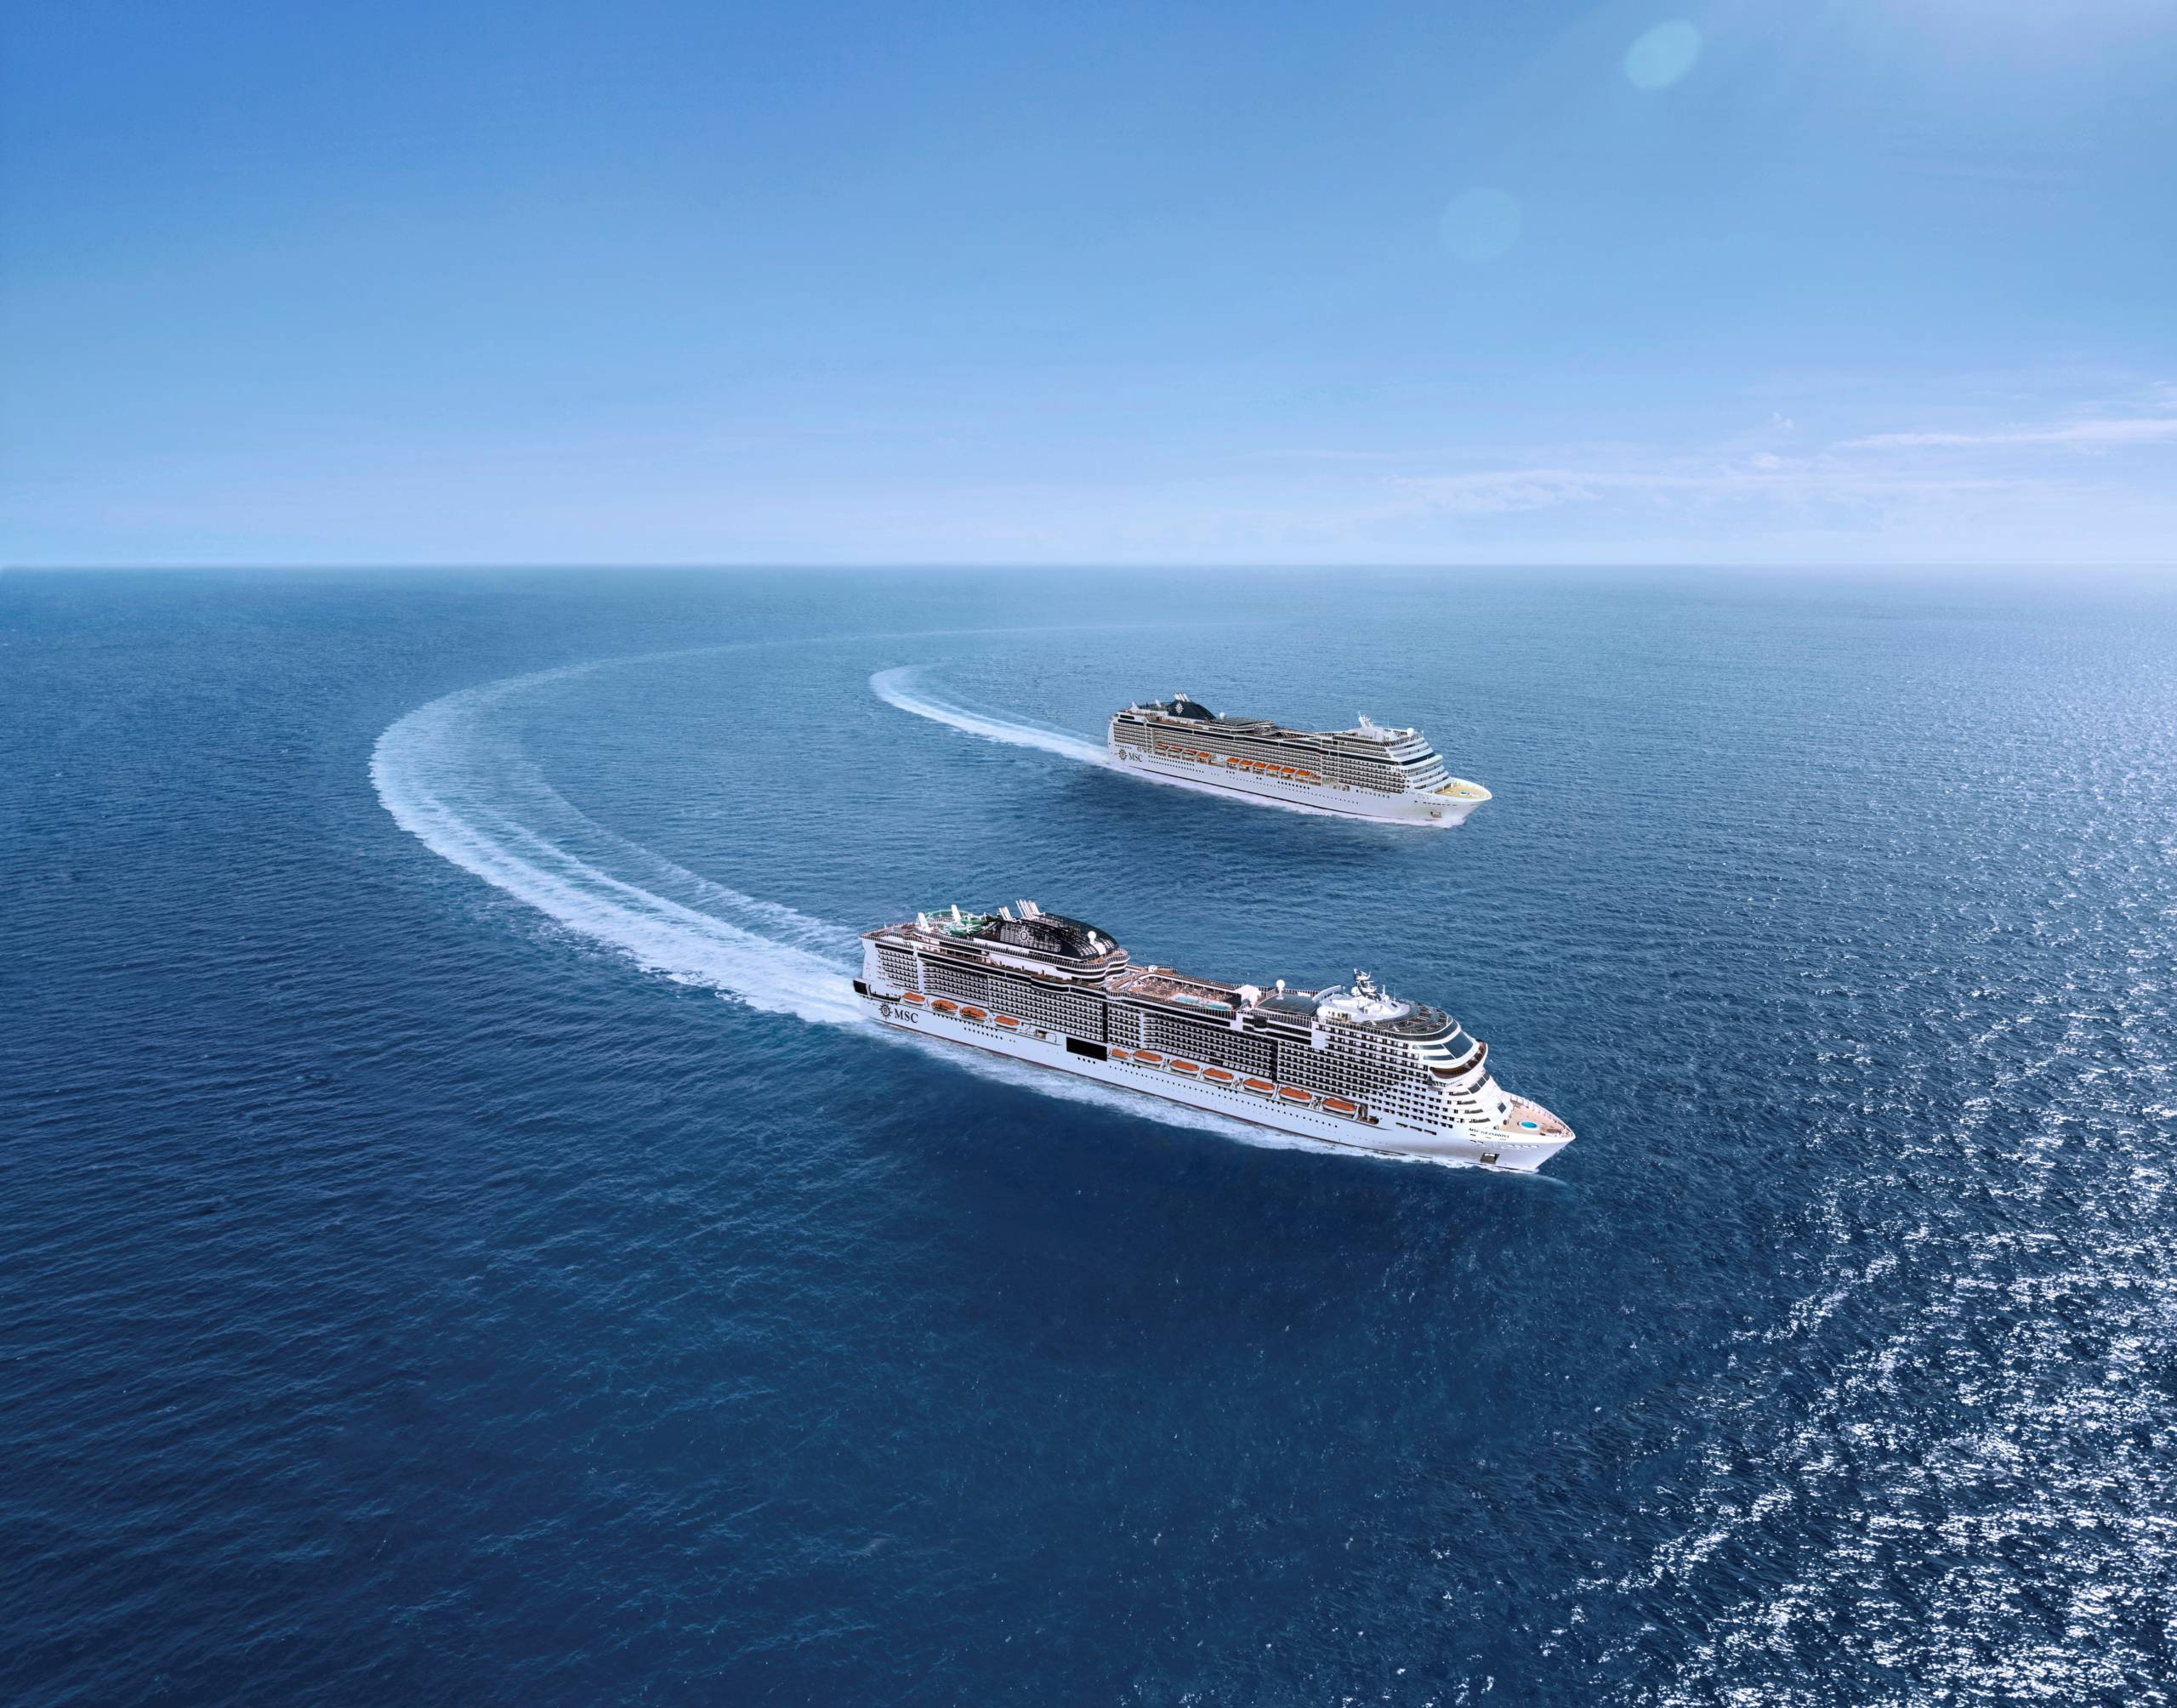 New COVID-era cruise restriction: No leaving the ship without an escort